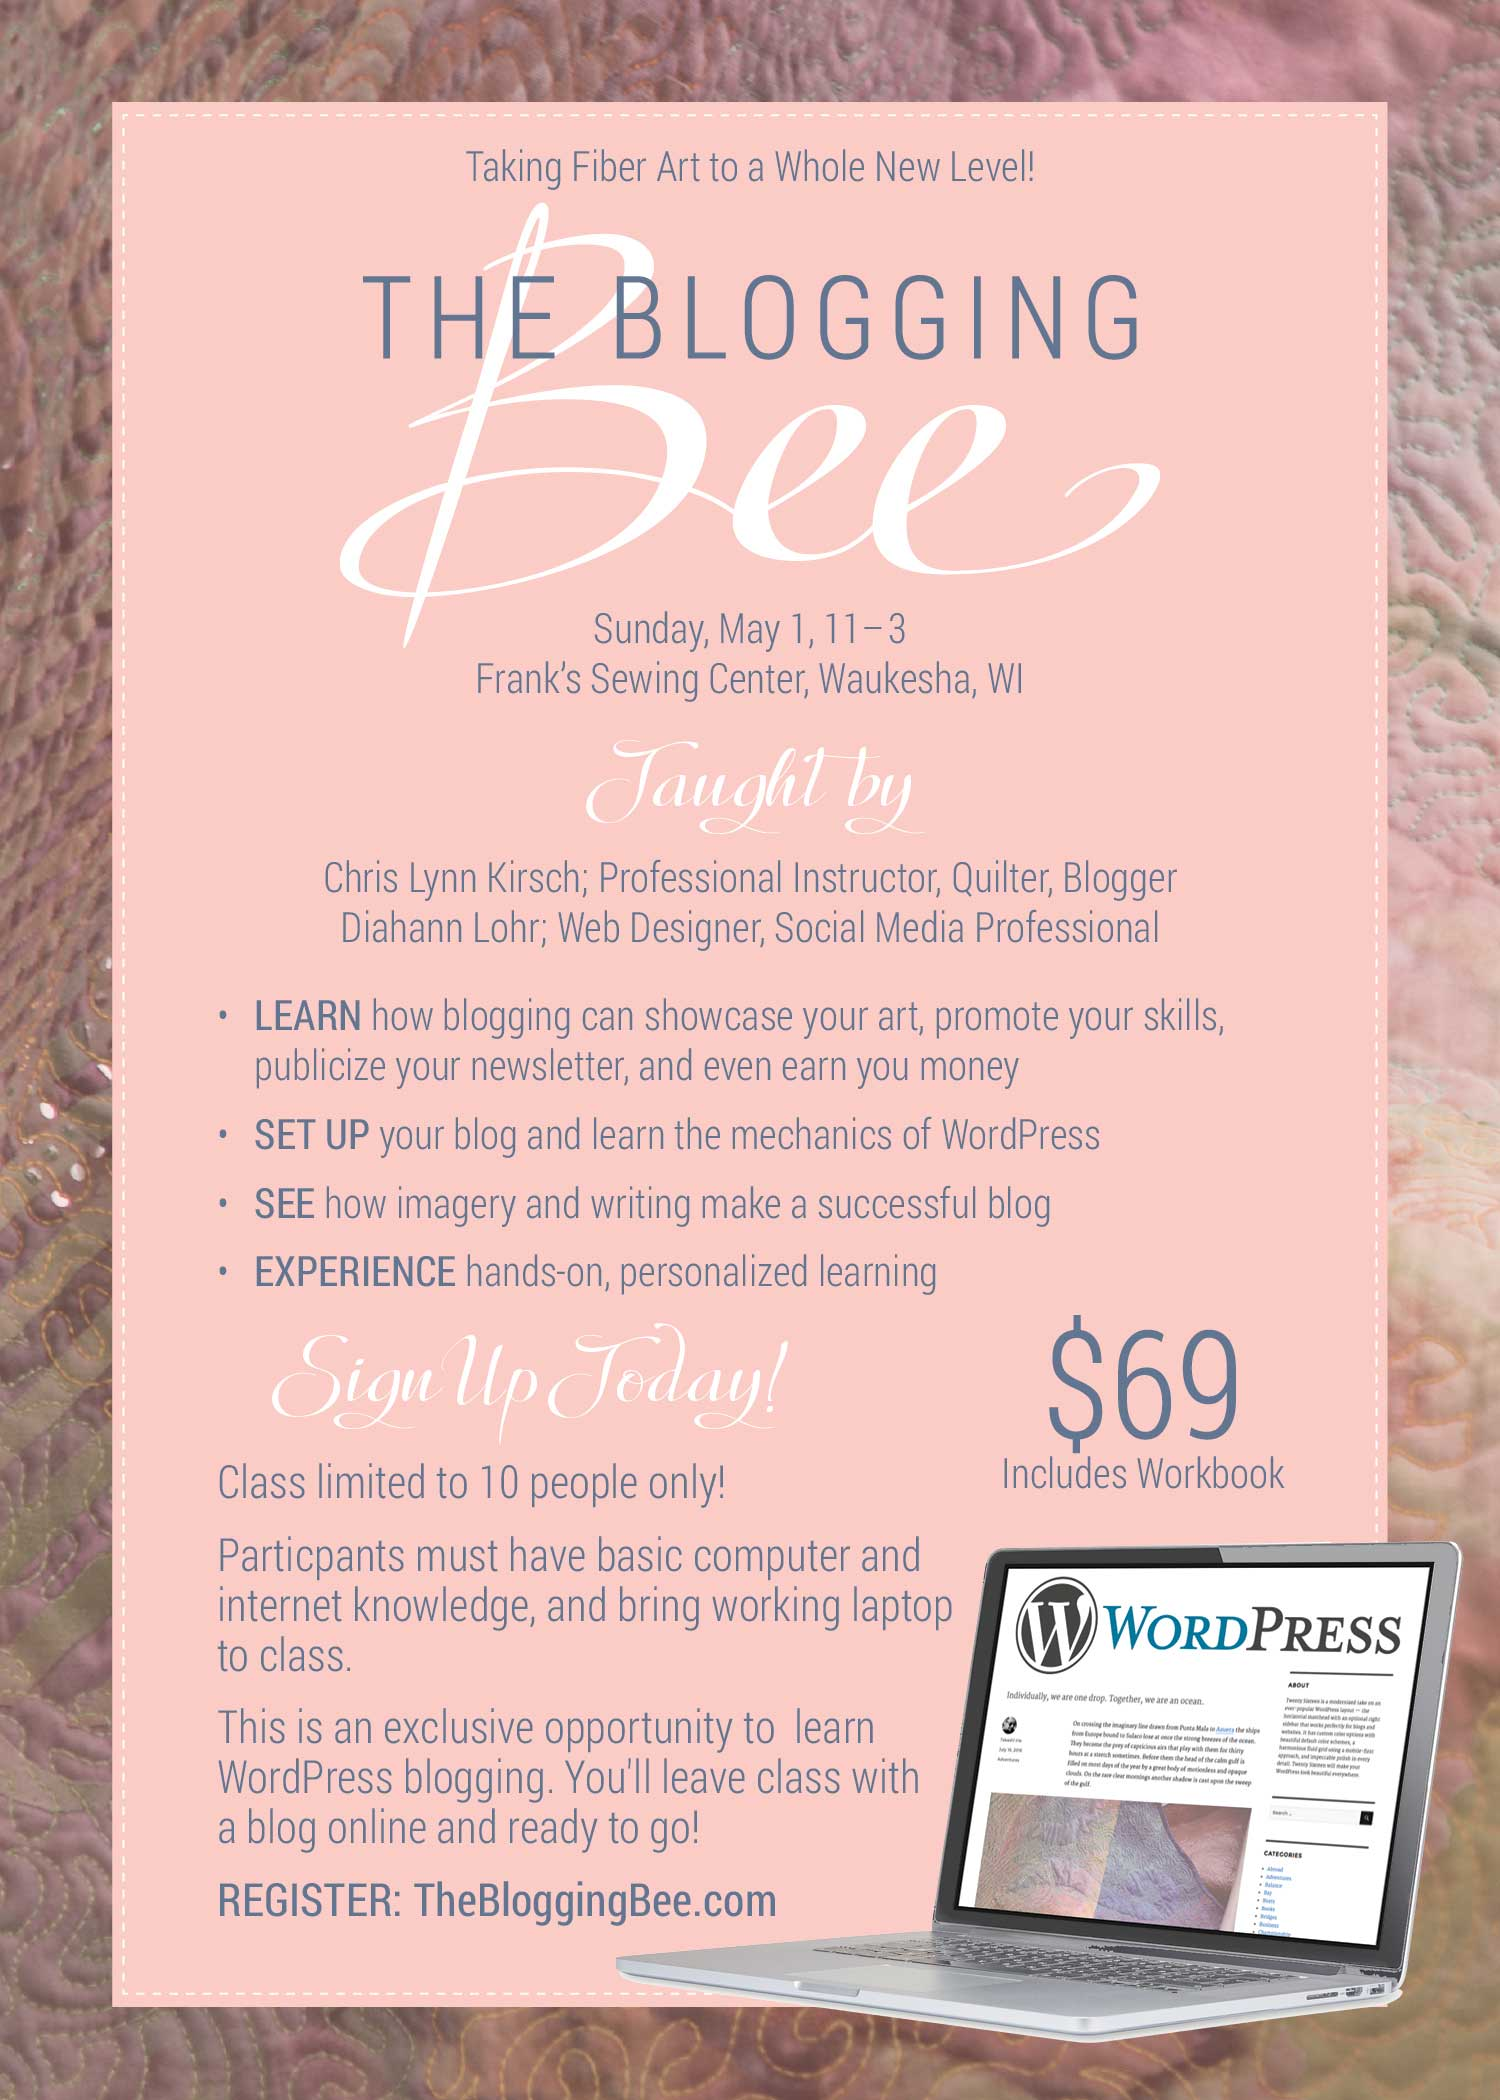 The Blogging Bee promotional ad, designed by Adunate.com